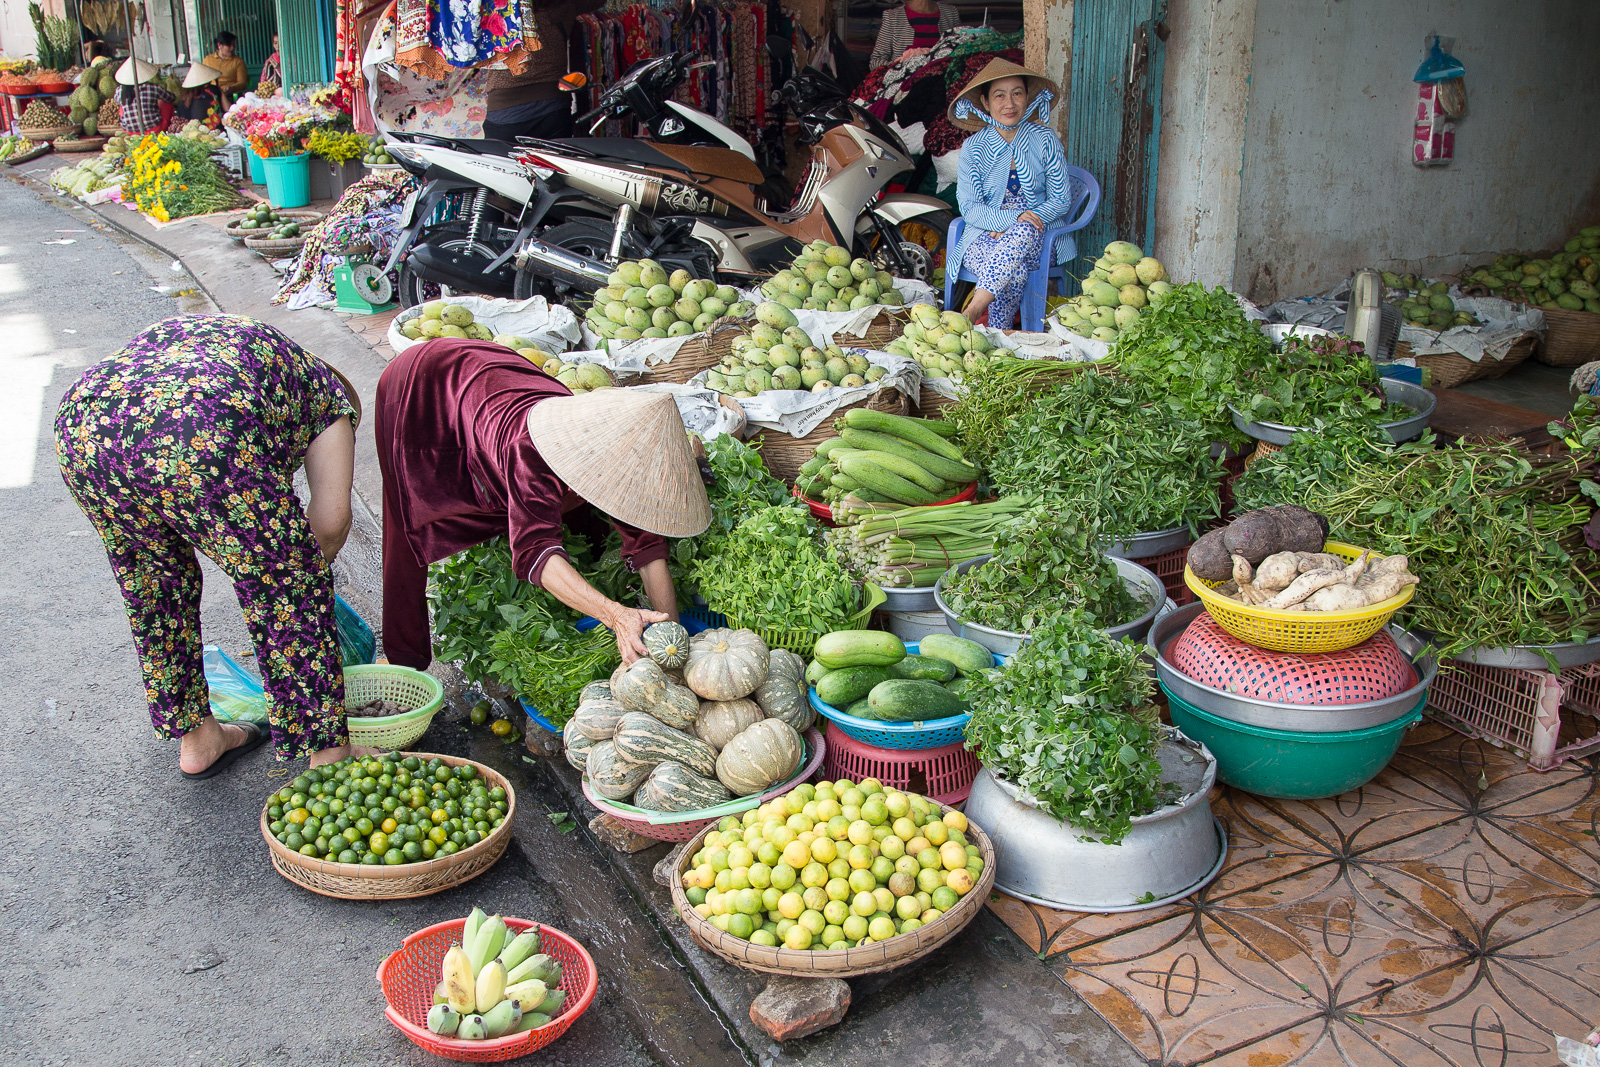 Fresh produce in abundance at the wholesale markets in Can Tho, Vietnam. We particularly like the lady in blue's psychedelic fashions.